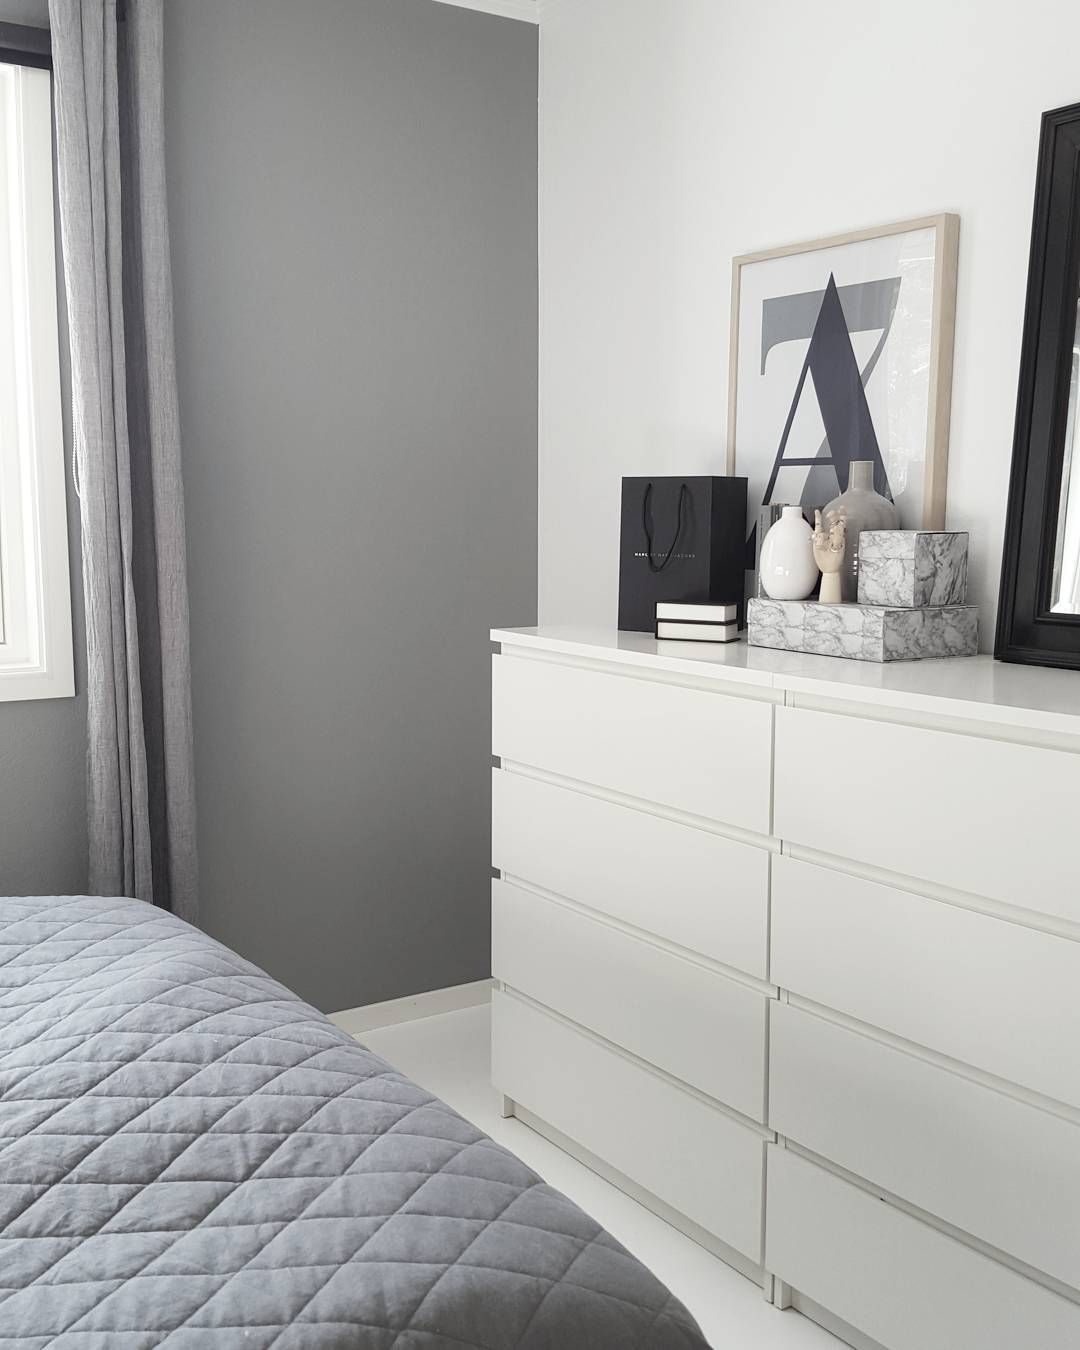 Ikea 39 malm 39 dressers ritavalstad bedrooms pinterest for Bedroom dressers ikea